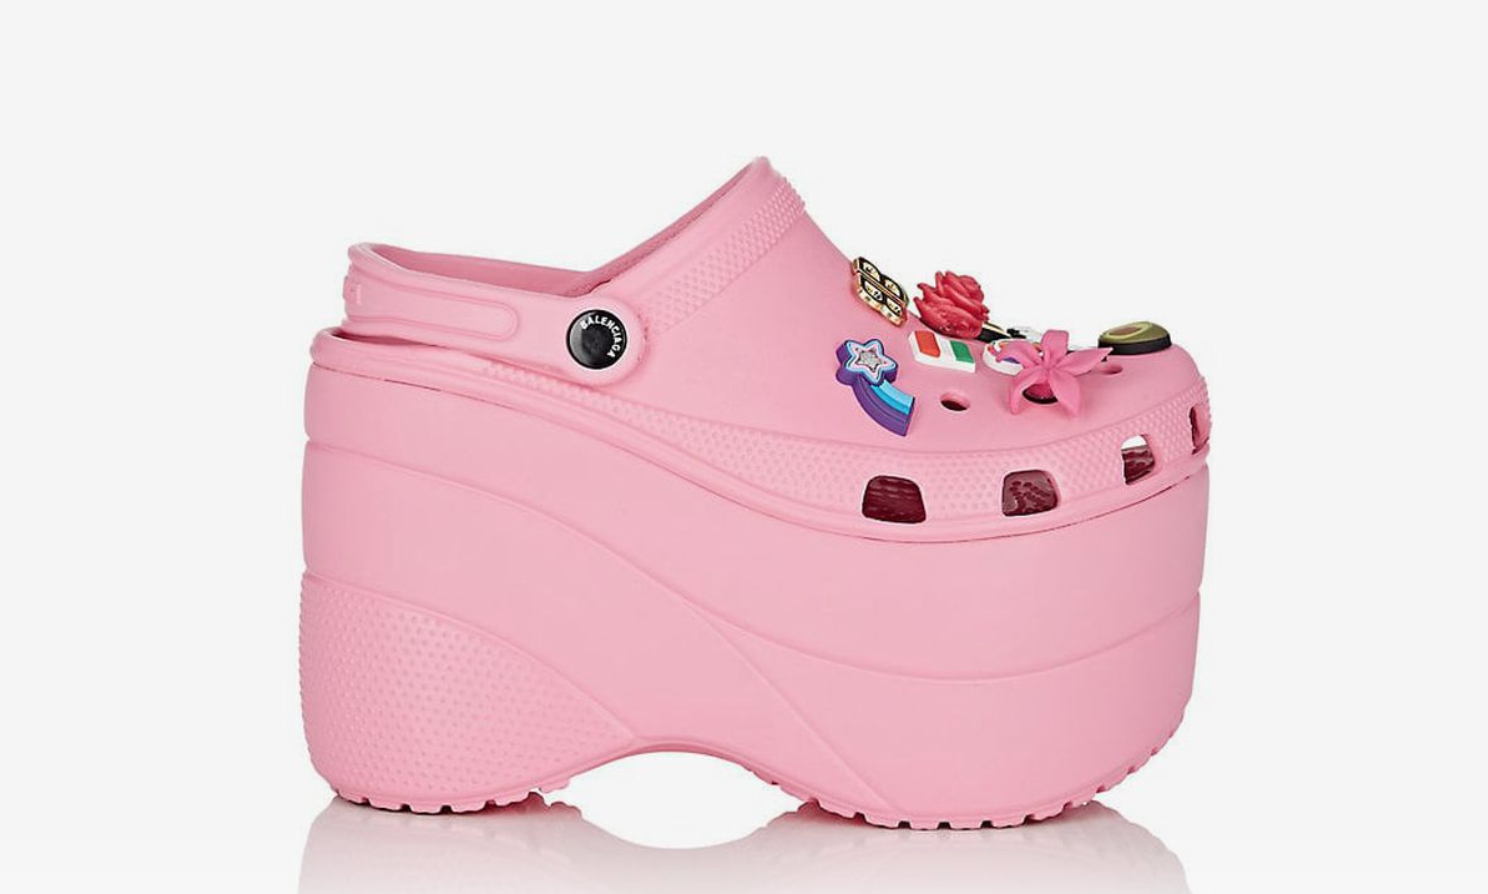 Balenciaga Platform Crocs Is The Collaboration We Don't Need1